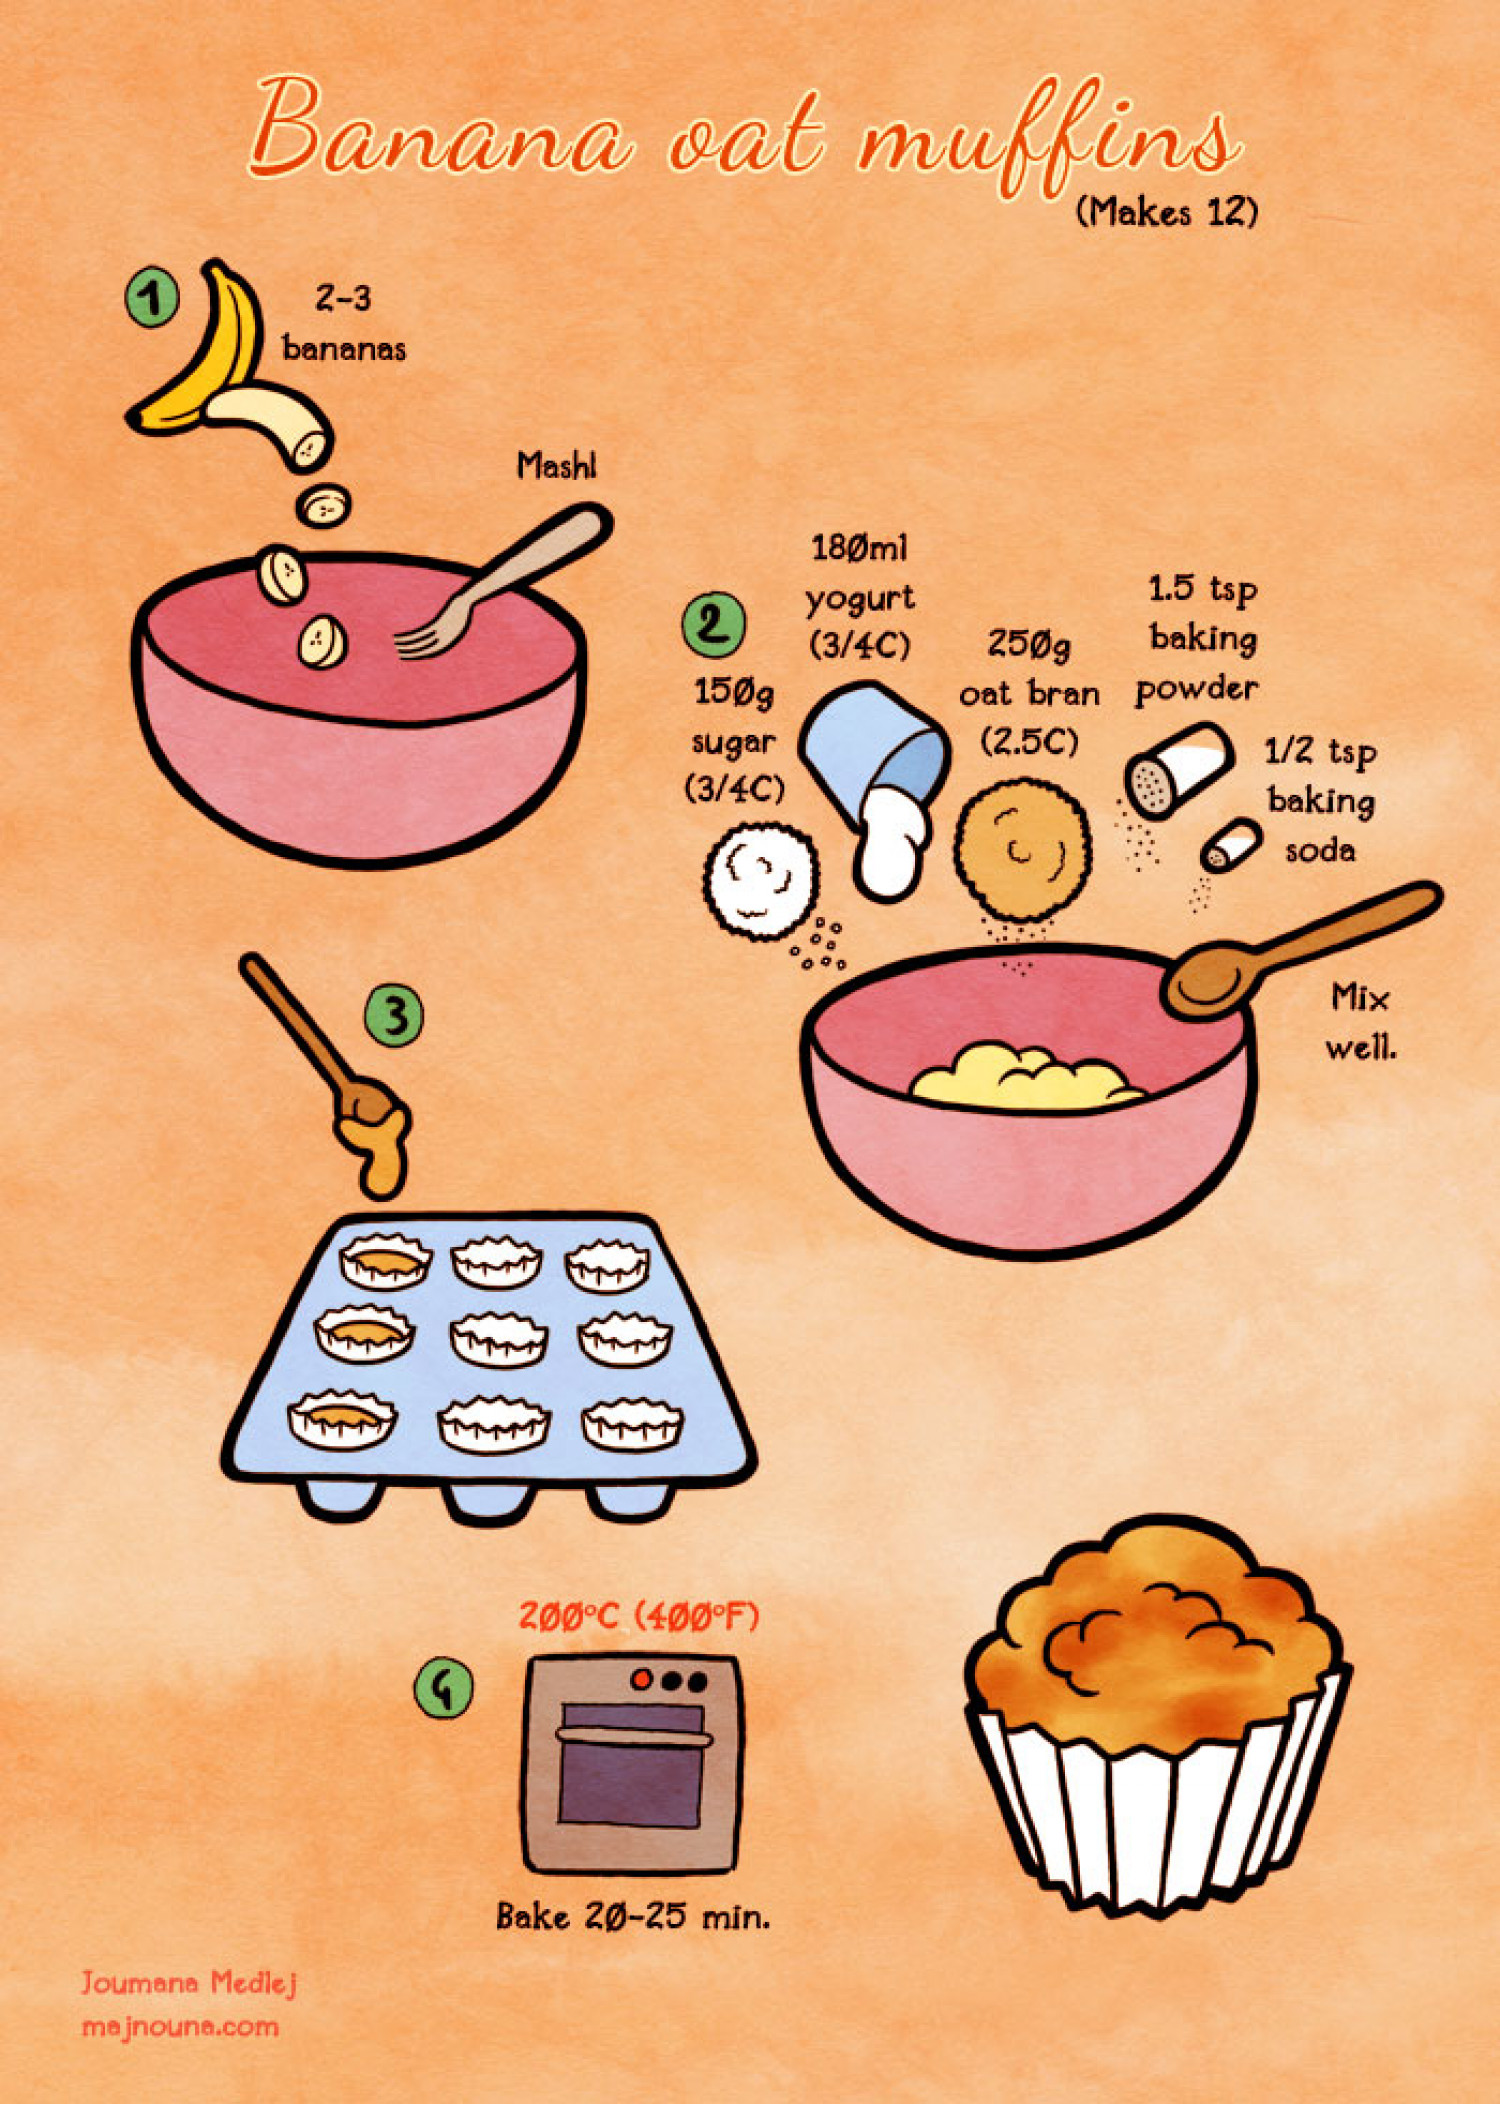 Banana Oat Muffins Infographic